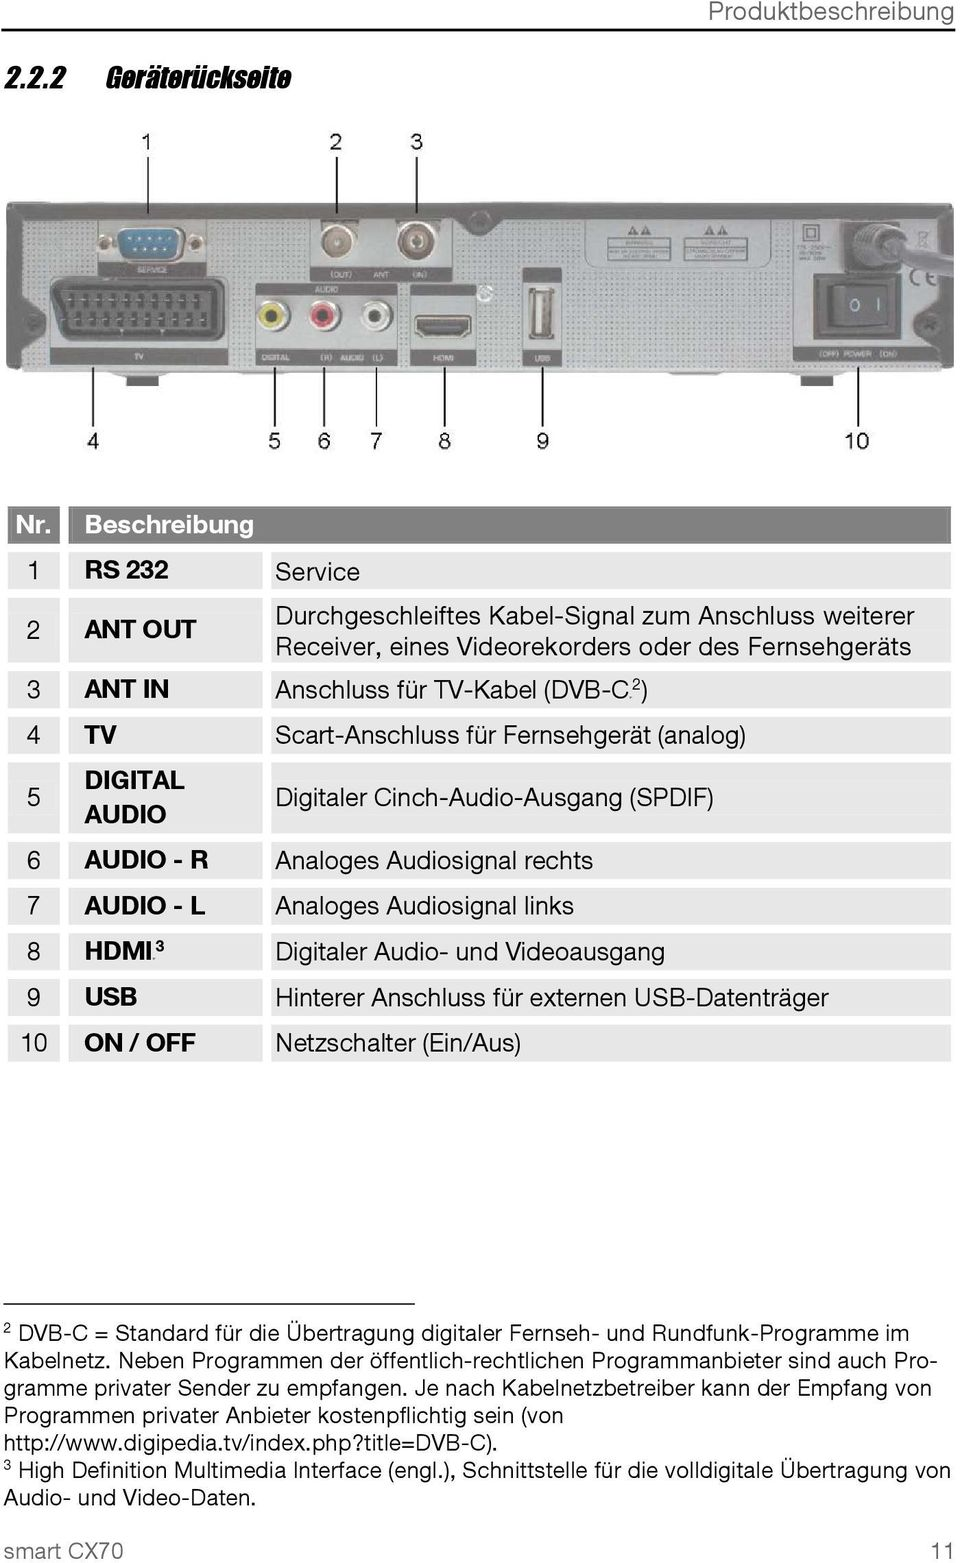 Scart-Anschluss für Fernsehgerät (analog) 5 DIGITAL AUDIO Digitaler Cinch-Audio-Ausgang (SPDIF) 6 AUDIO - R Analoges Audiosignal rechts 7 AUDIO - L Analoges Audiosignal links 8 HDMI2F3 Digitaler